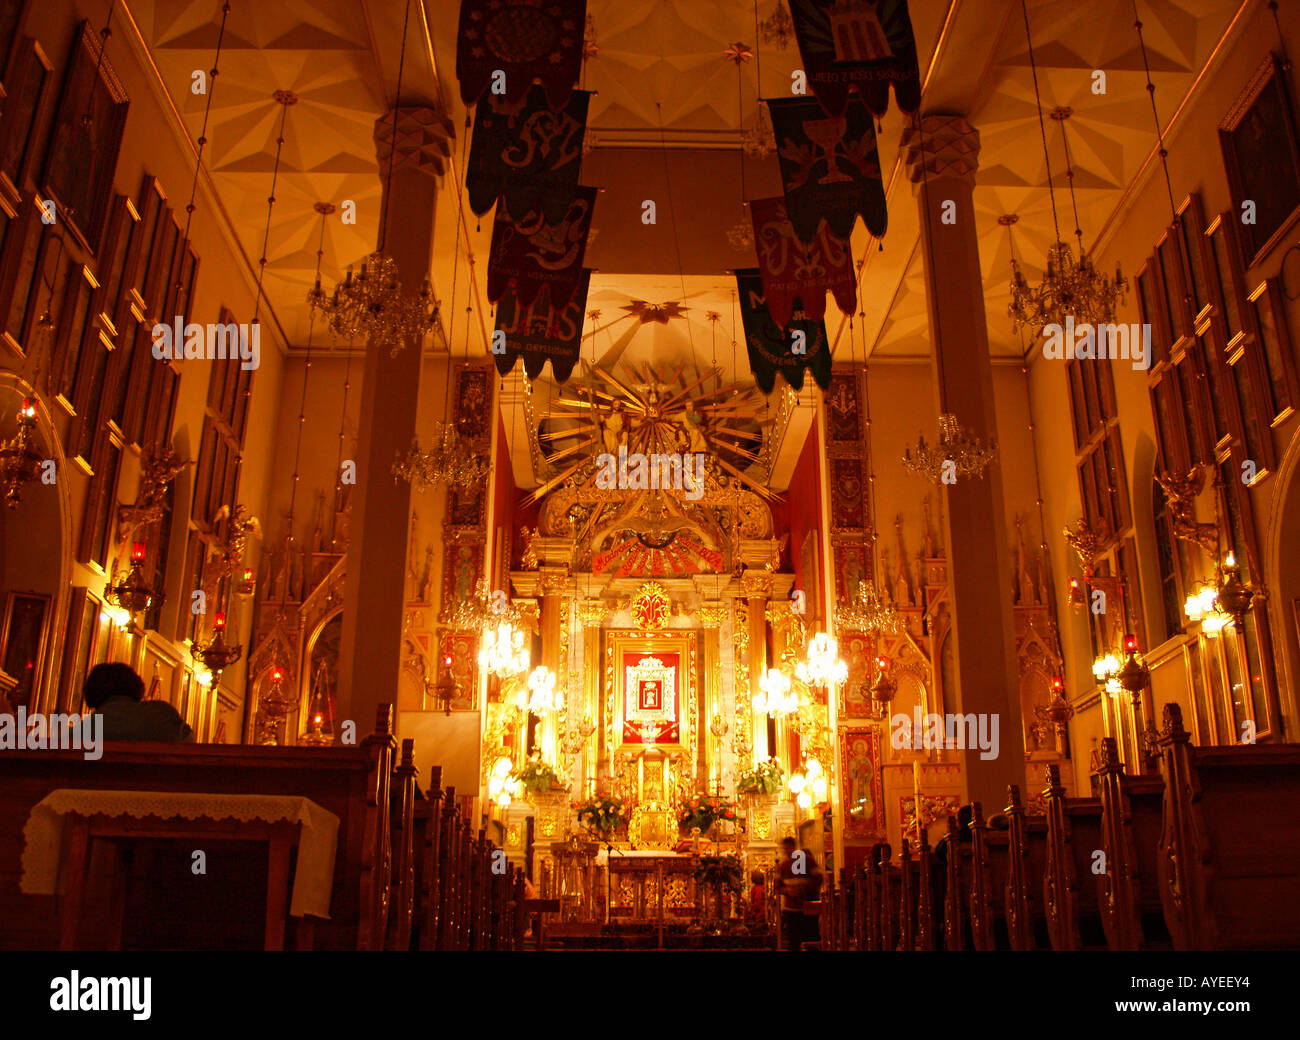 Altar with Our Lady St Mary in Church of St Dorothy Lichen Poland - Stock Image